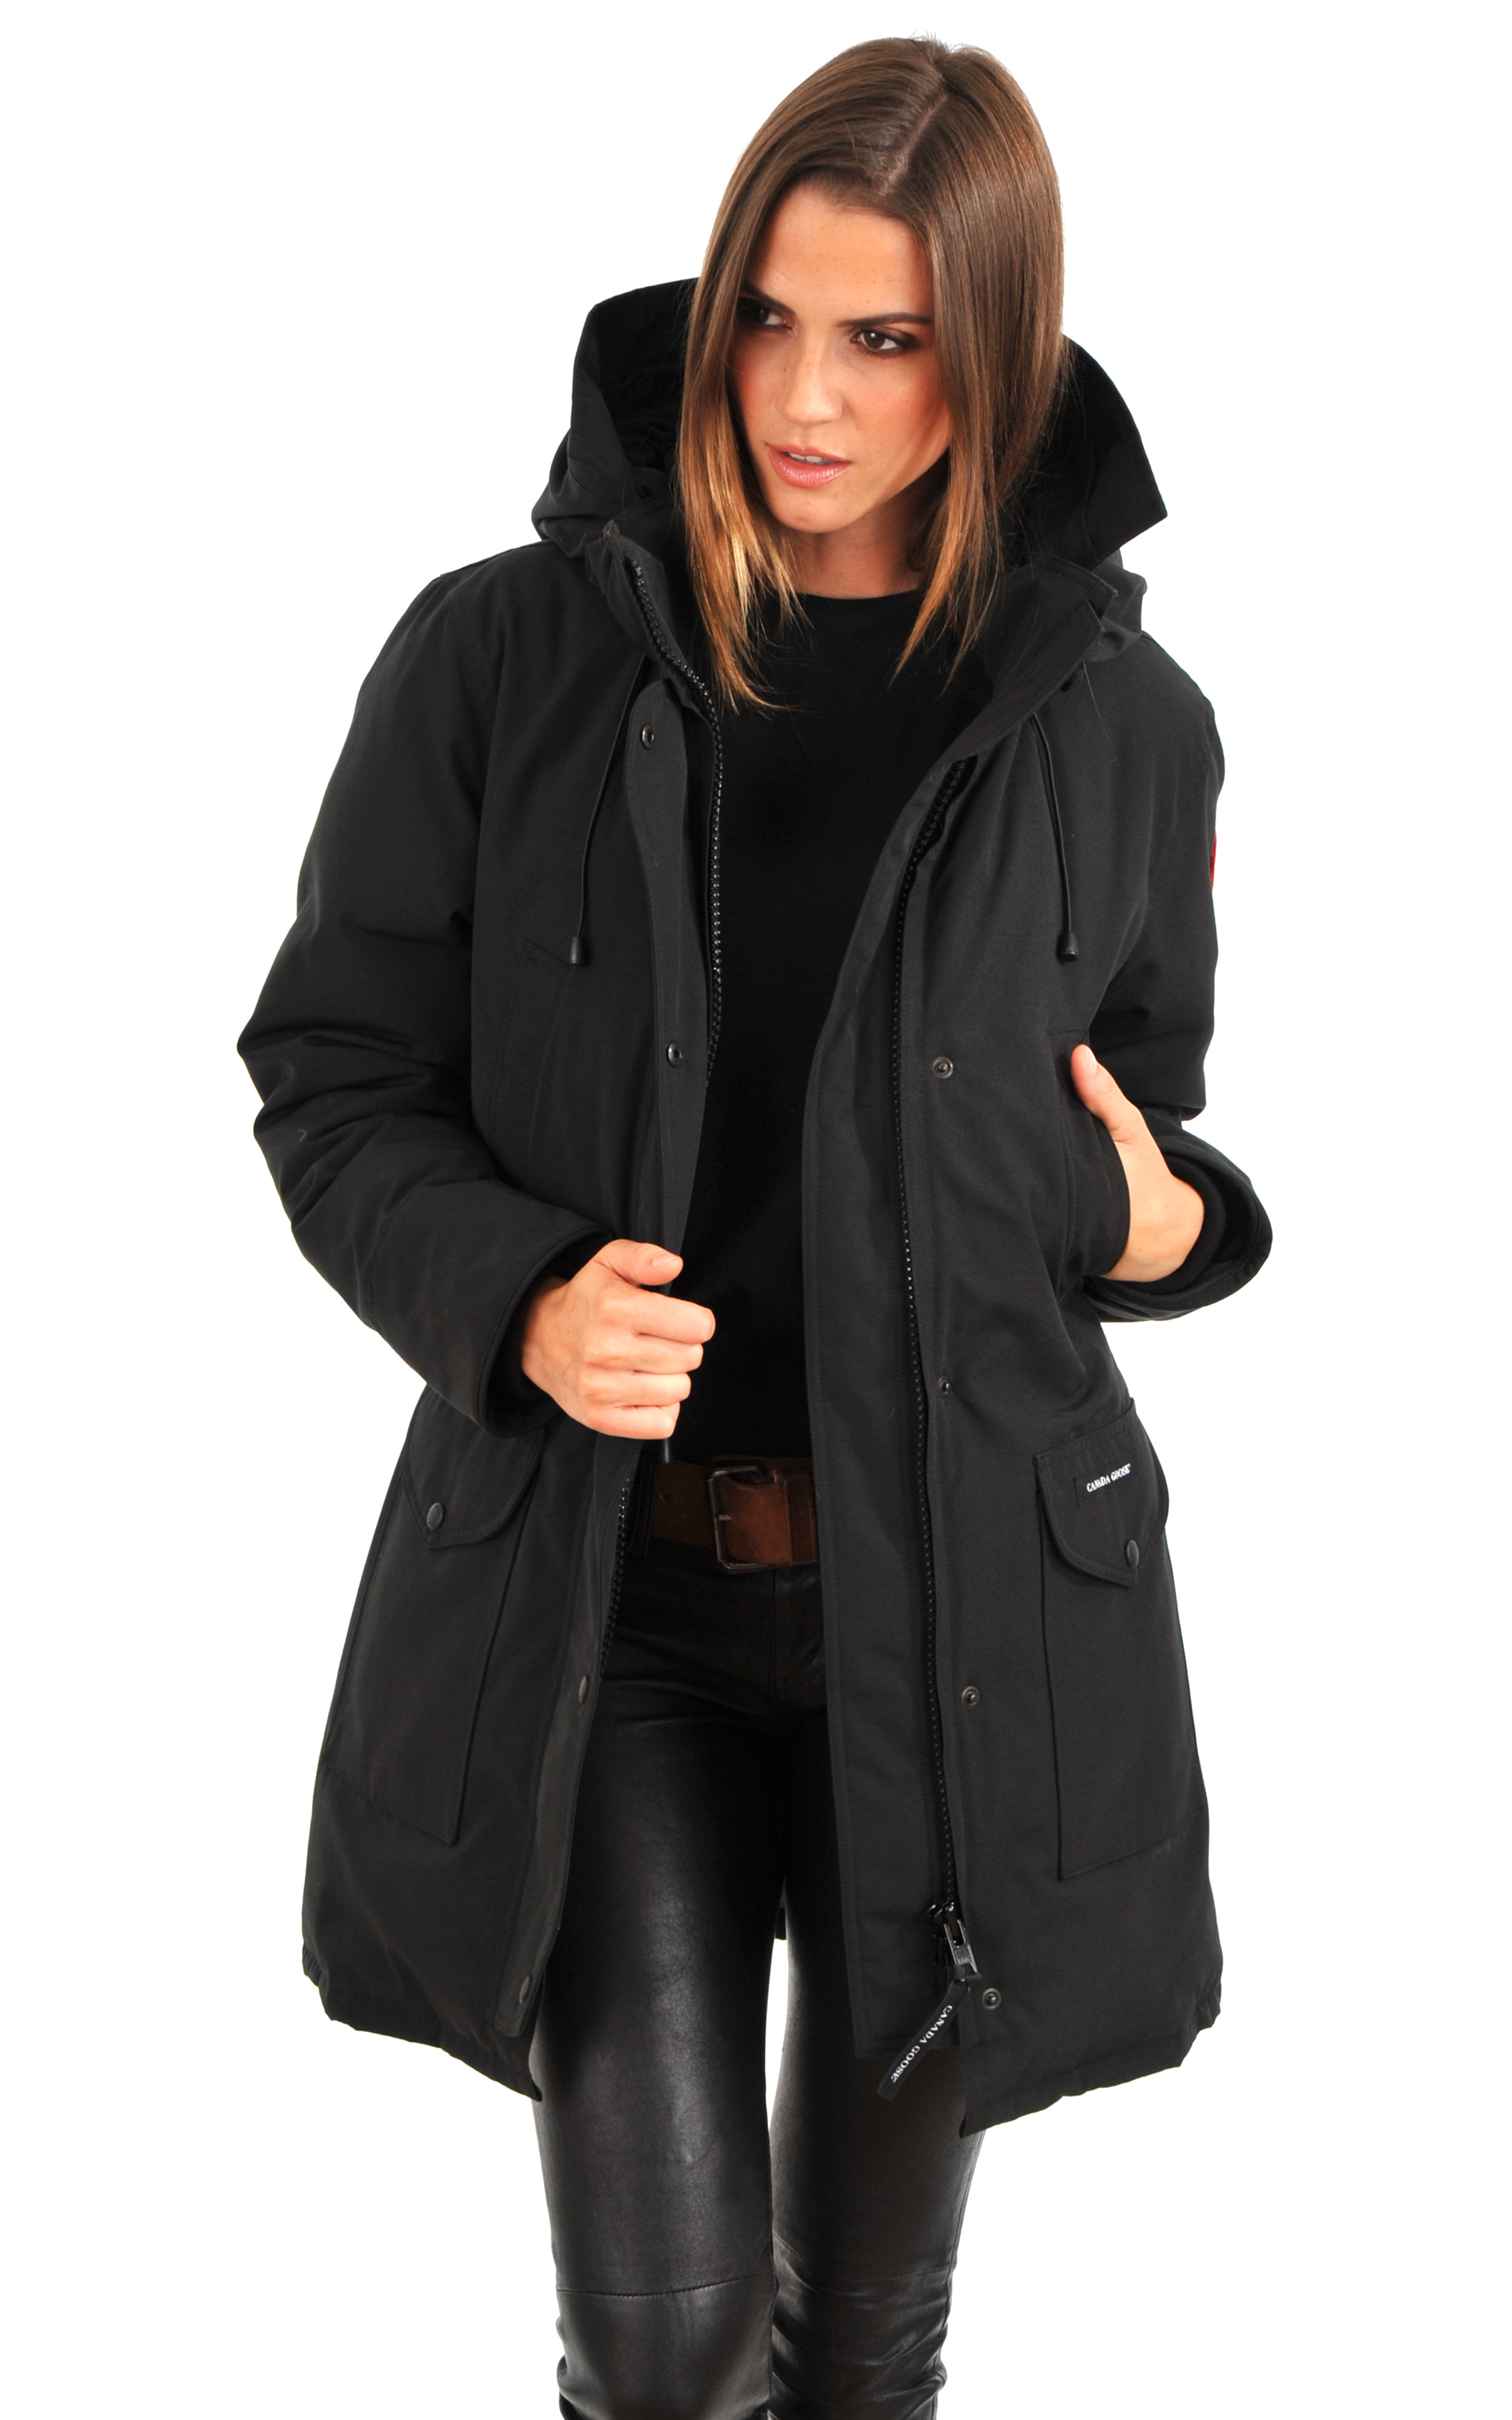 nettoyer un manteau canada goose. Black Bedroom Furniture Sets. Home Design Ideas